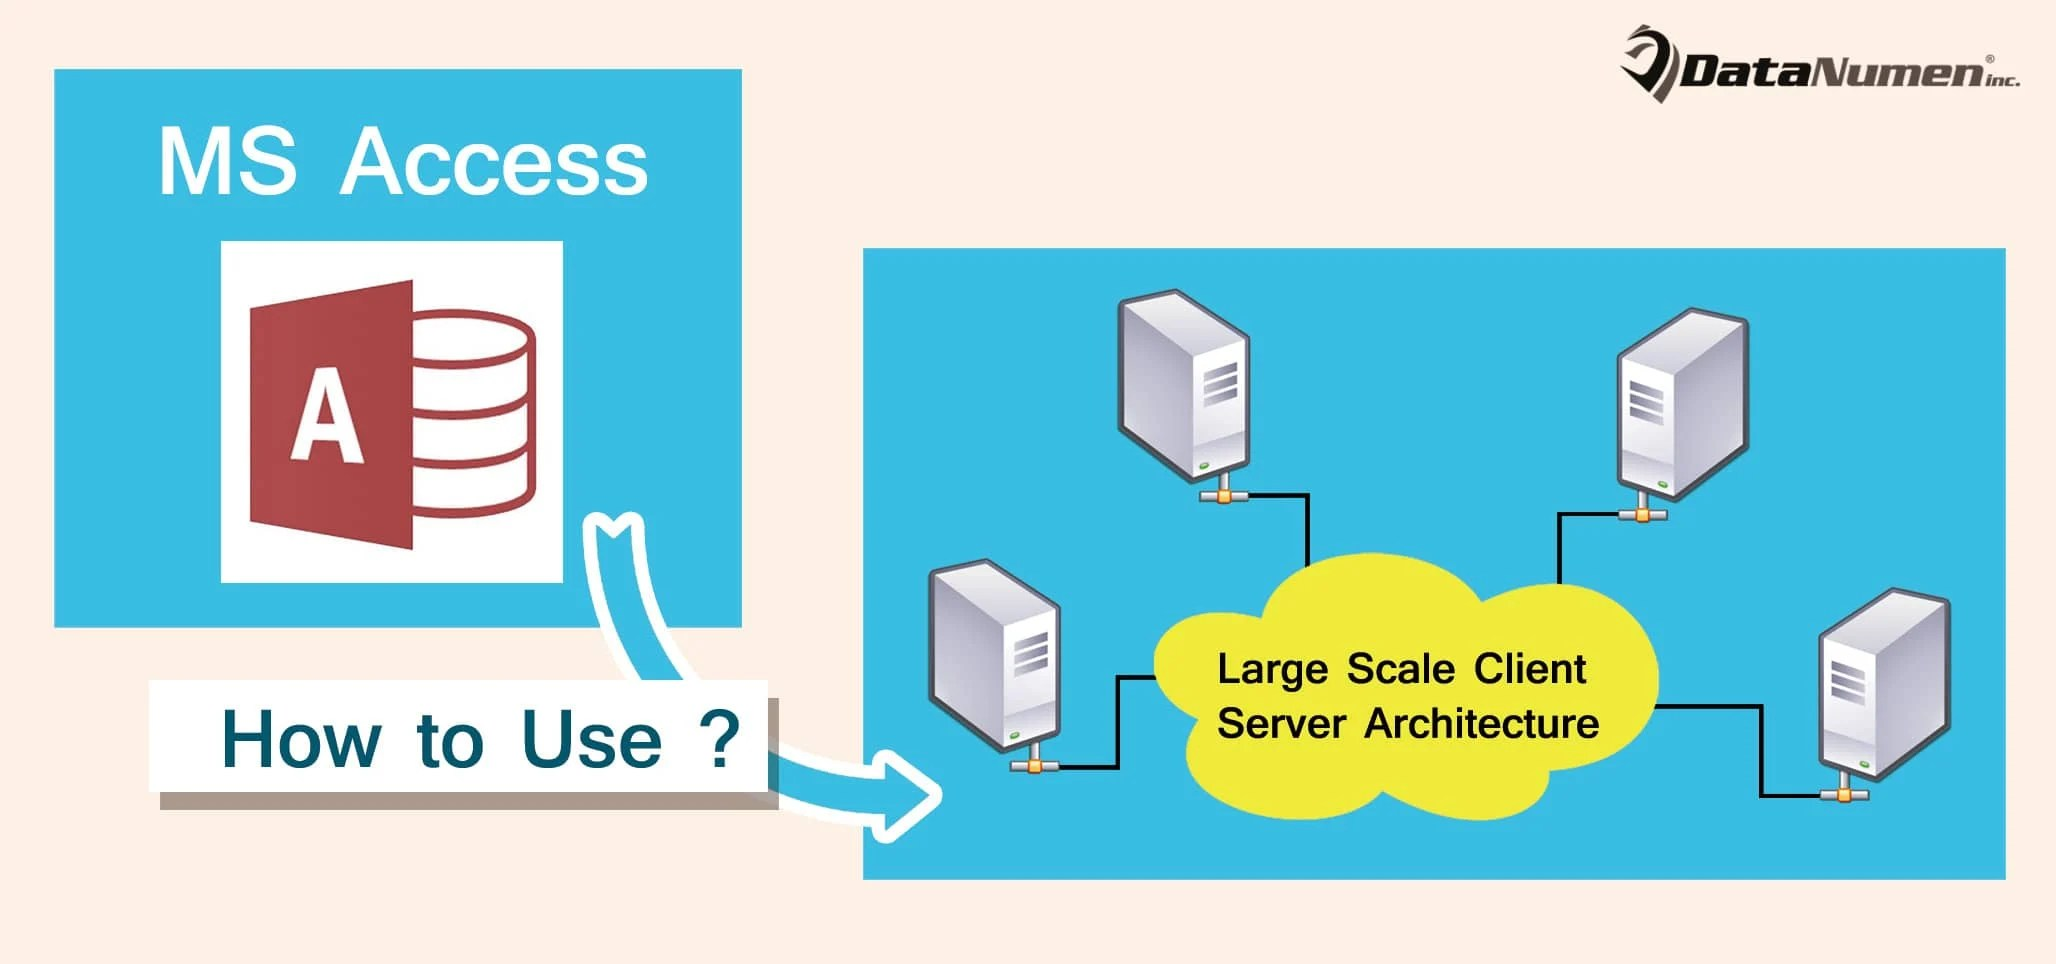 How to Innovatively Use MS Access In A Large Scale Client Server Architecture